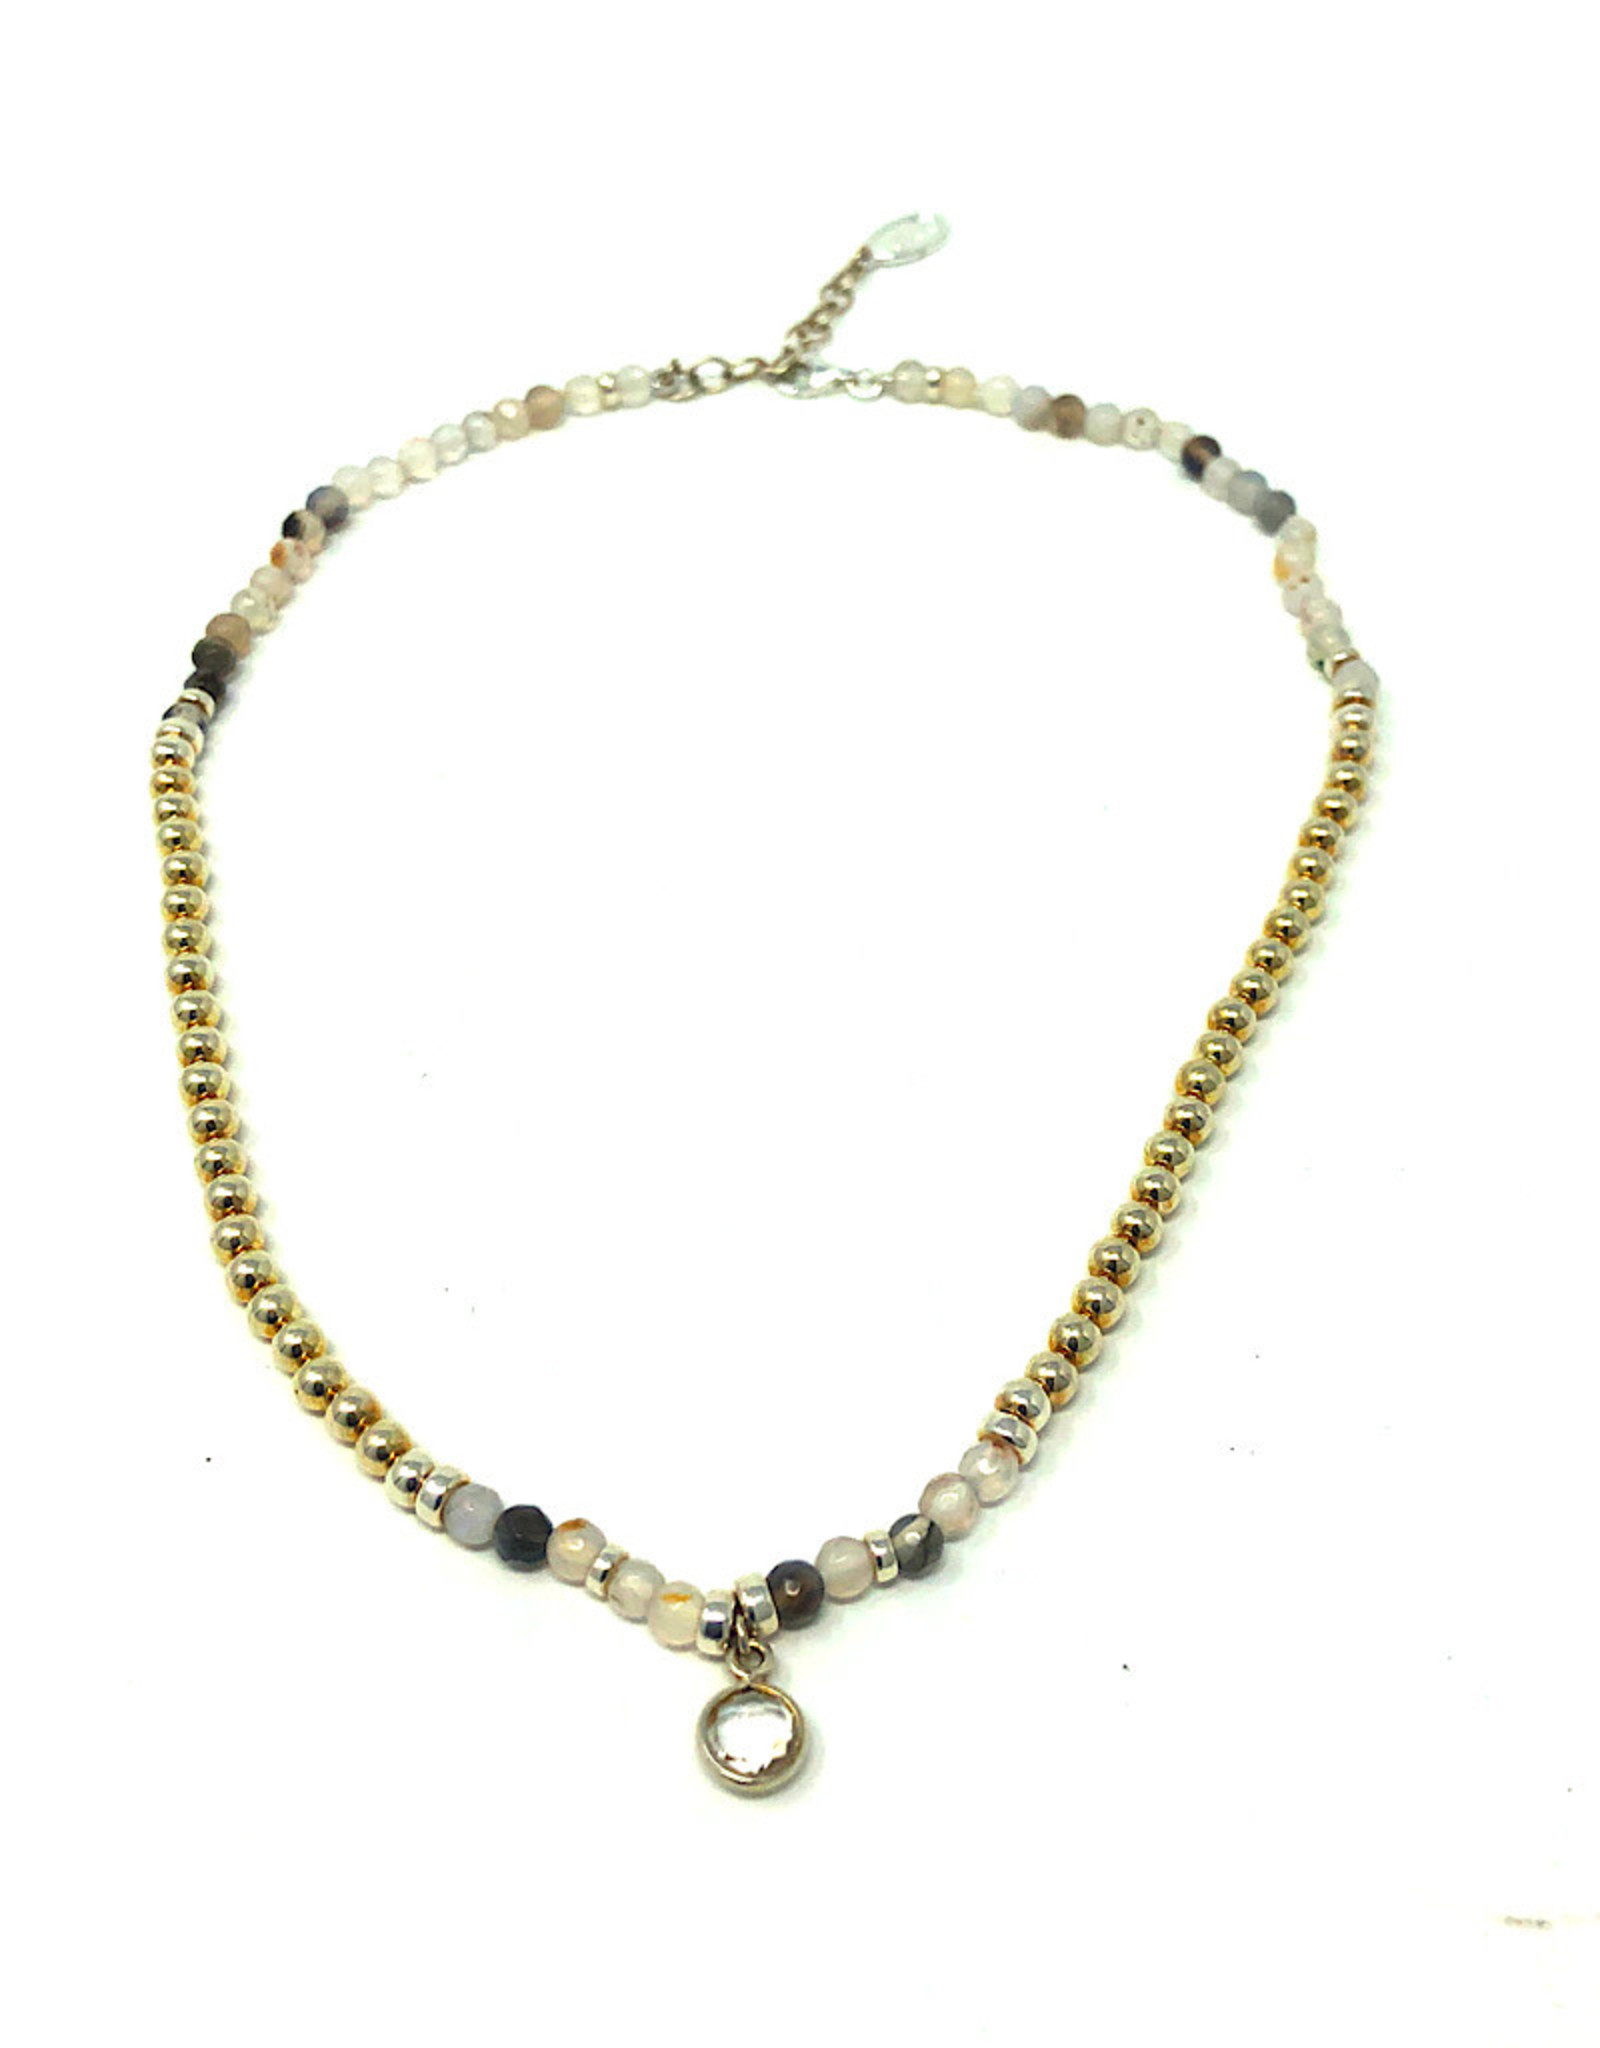 Beblue Silver 925. Necklace with Clear Pendant